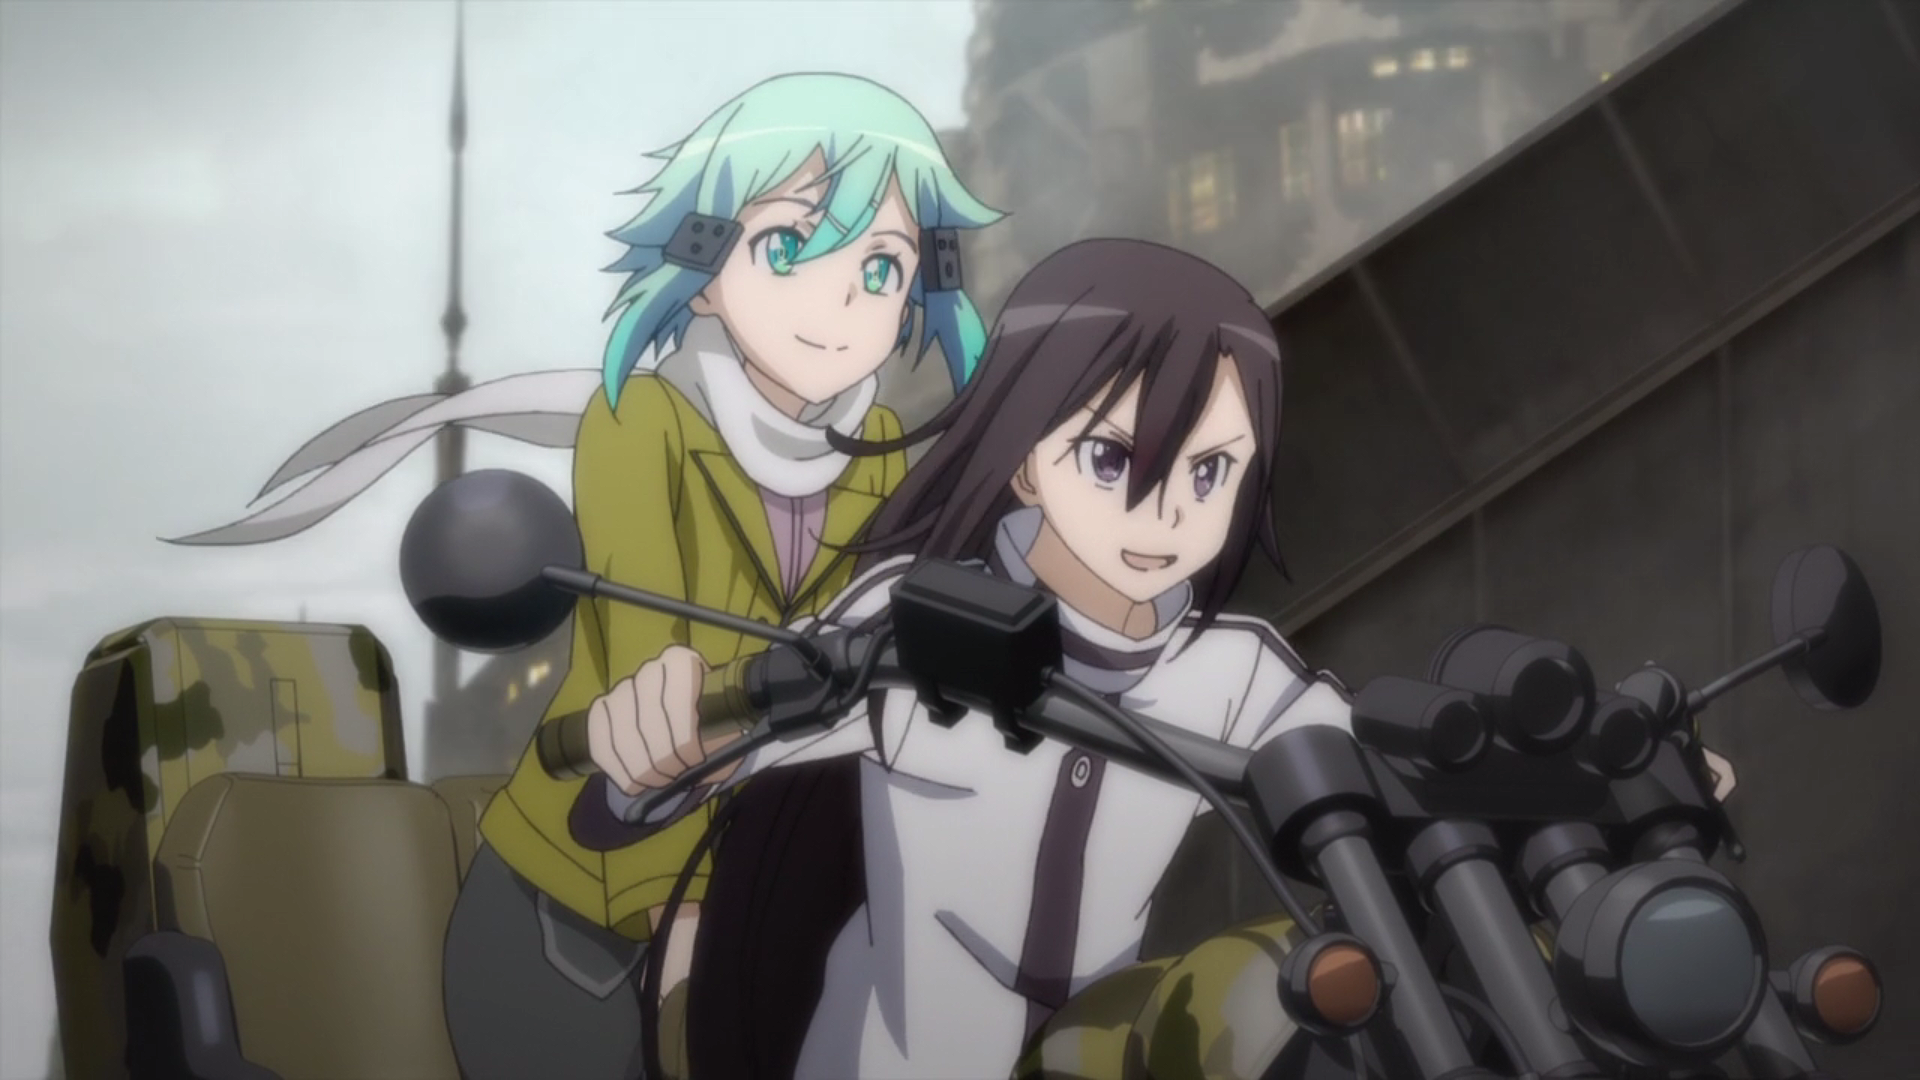 sinon and kirito relationship